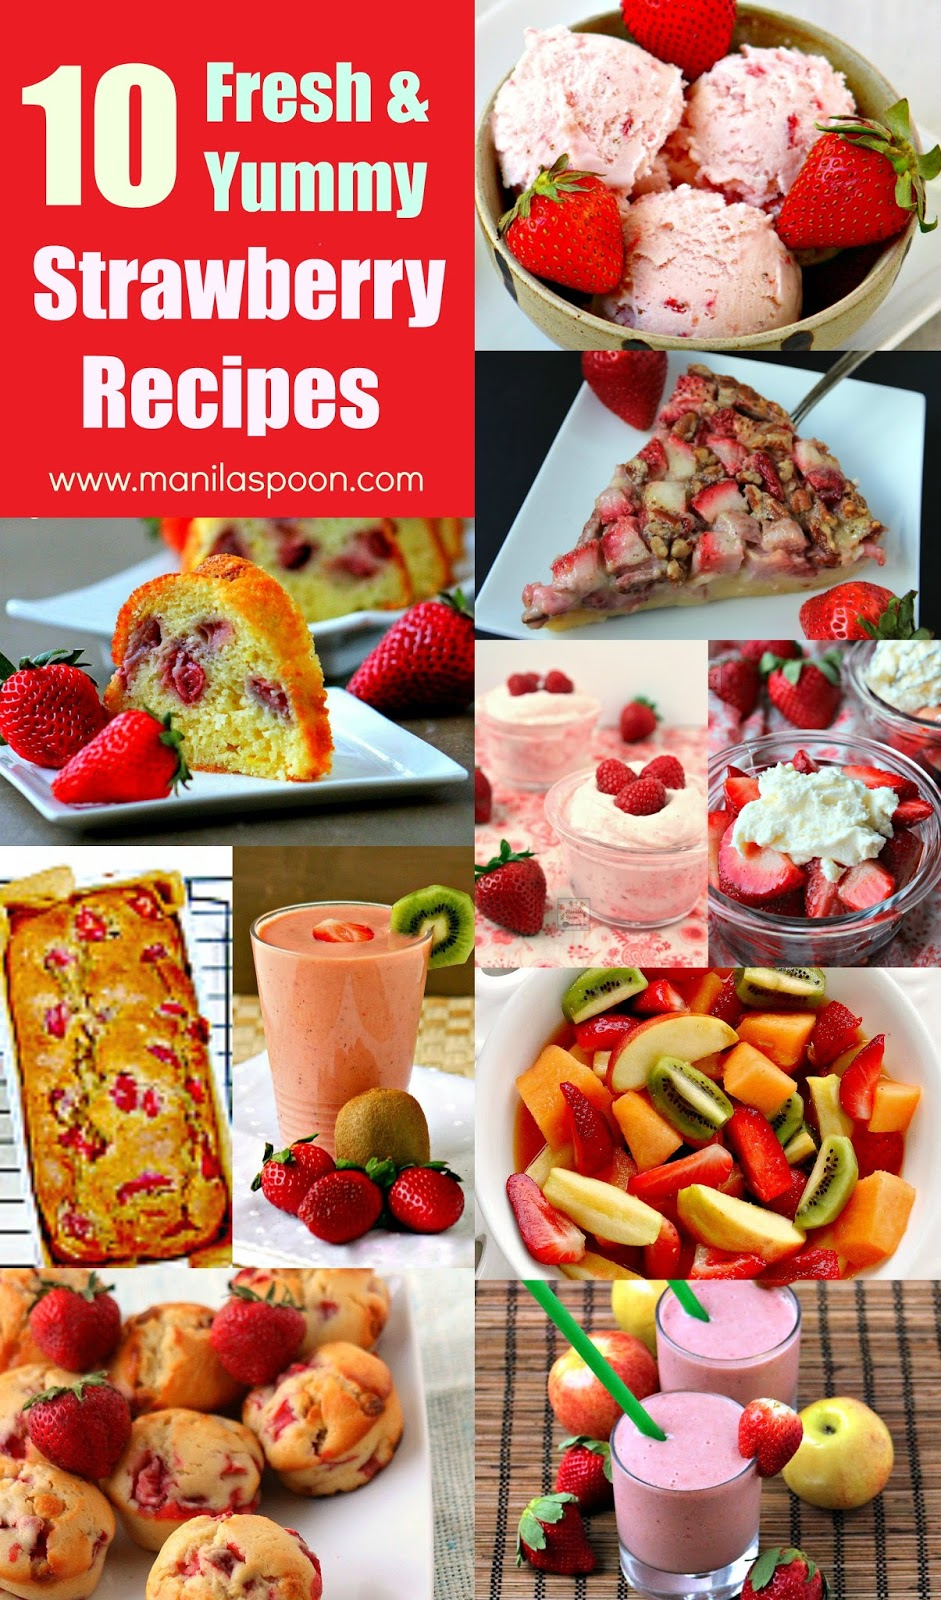 Looking for new and delicious strawberry recipes to try this Spring? Here are some of our tried and tested recipes featuring fresh and juicy strawberries that your whole family will enjoy. | manilaspoon.com